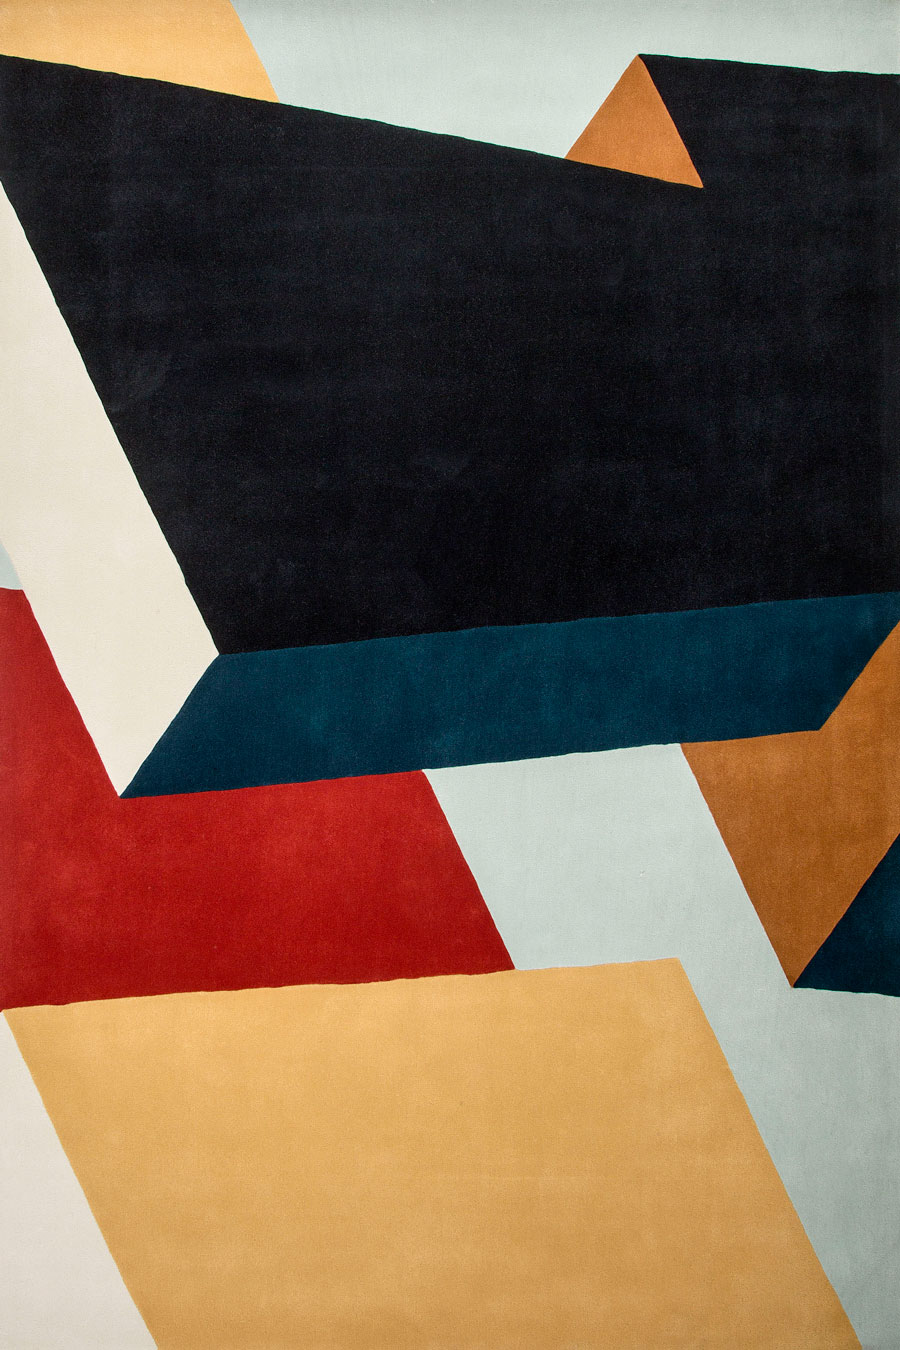 Overhead image of geometric Dovetail Halving rug by Mr Frag